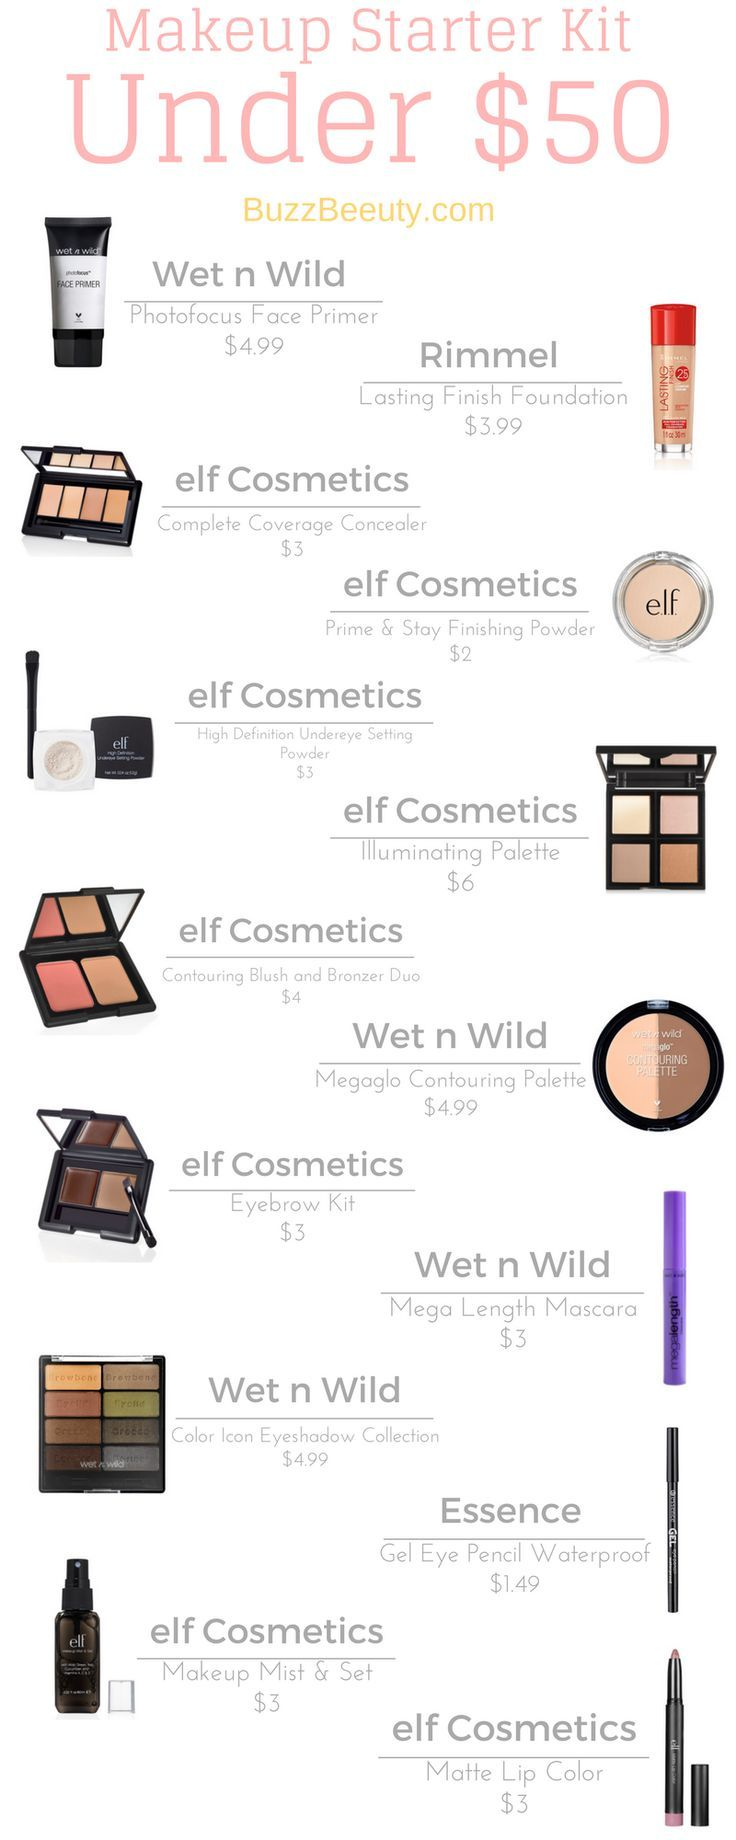 Makeup Kits On A Budget - Starter Kits Under $50 And $100 Makeup Kits On a Budget - Starter Kits Under $50 and $100 Makeup Products makeup products for beginners